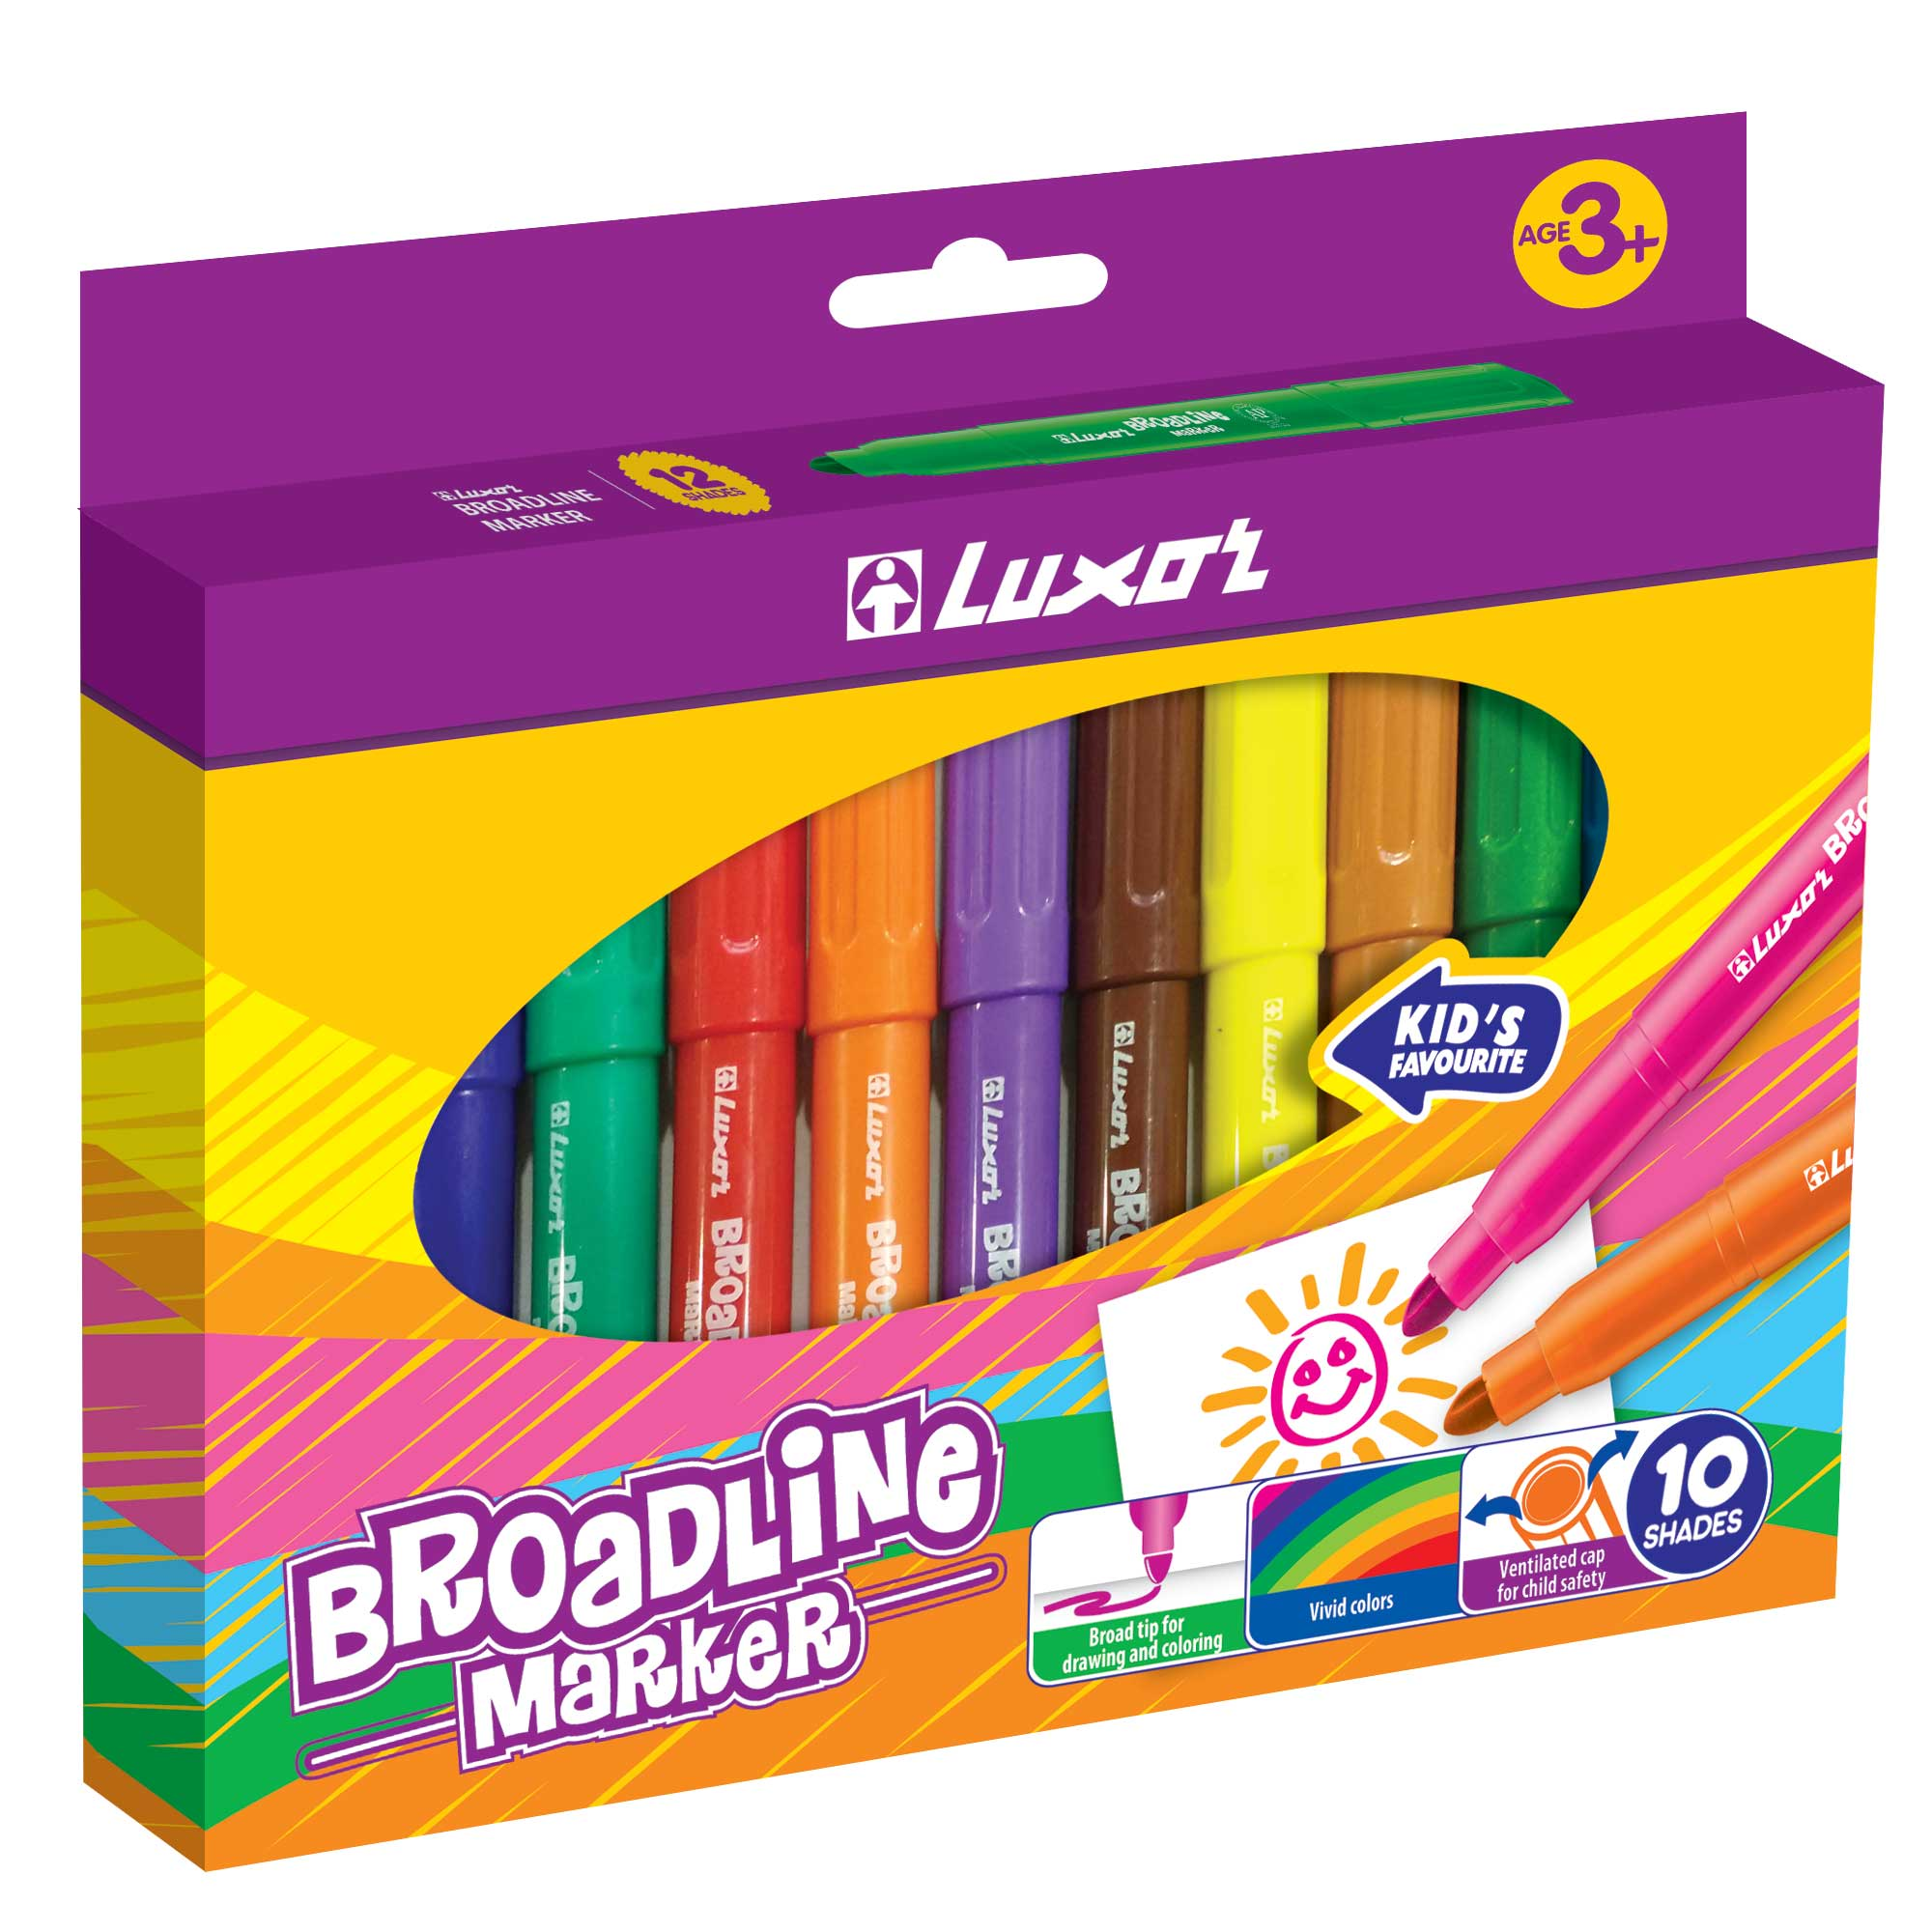 Broadline Washable Marker